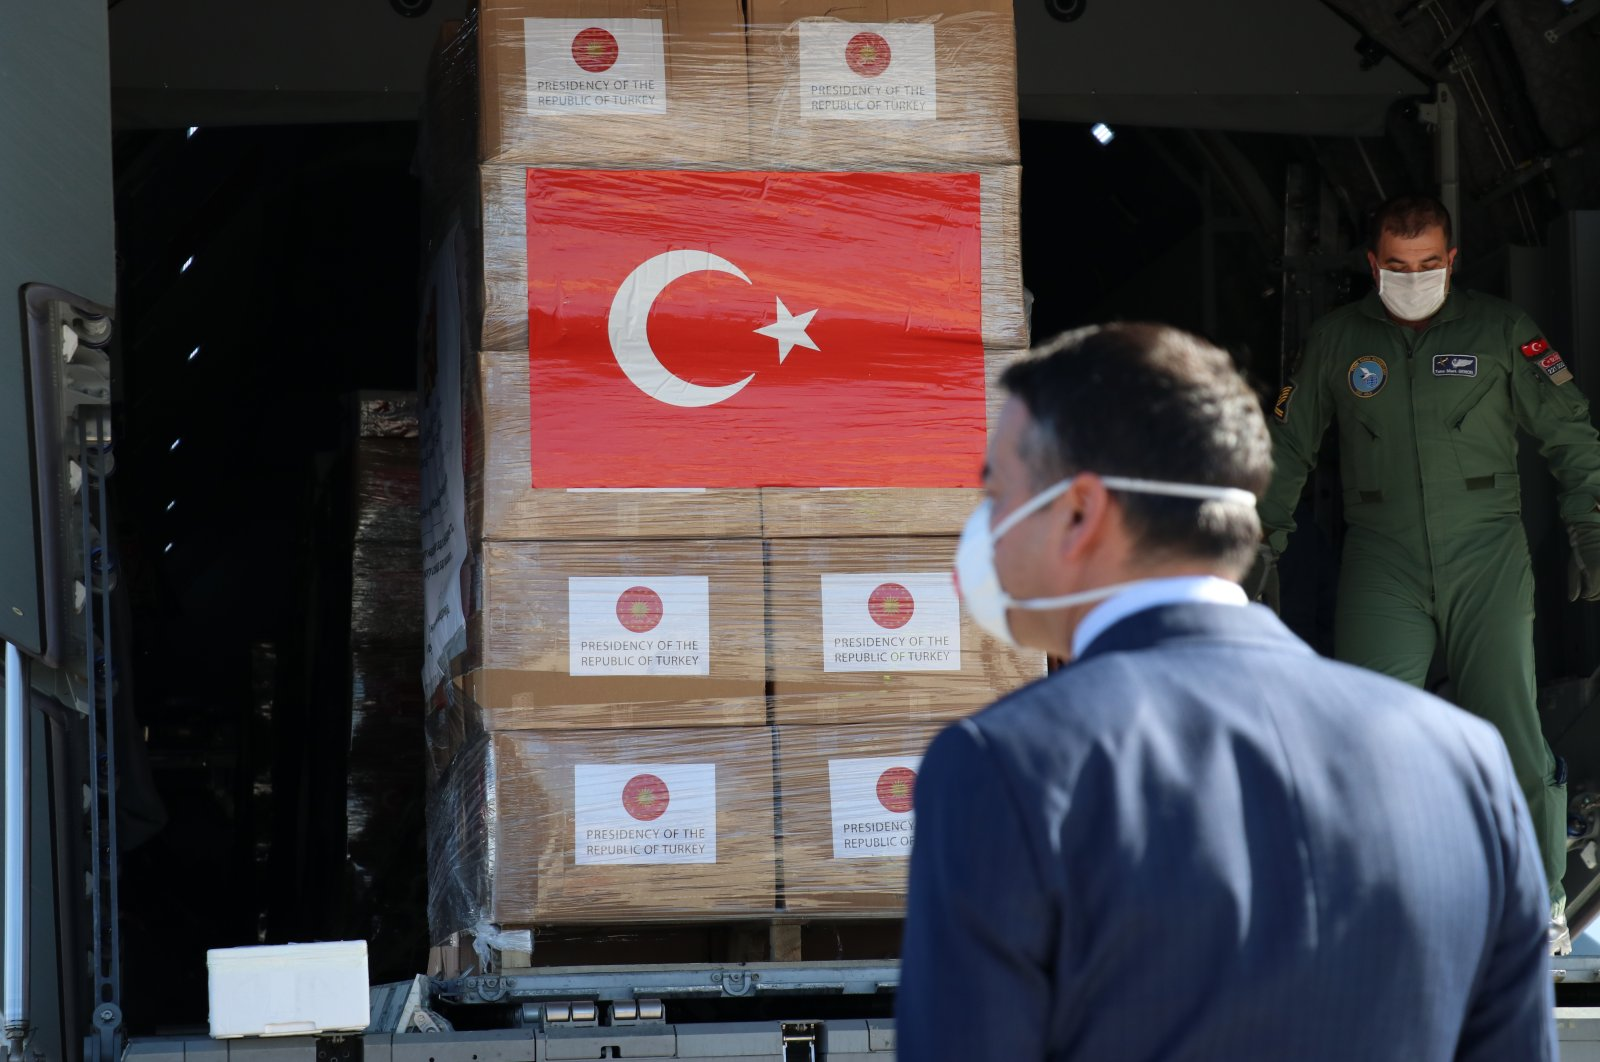 The medical aid sent by Turkey to North Macedonia unloaded from the cargo plane on Wednesday, April 8, 2020. (AA Photo)